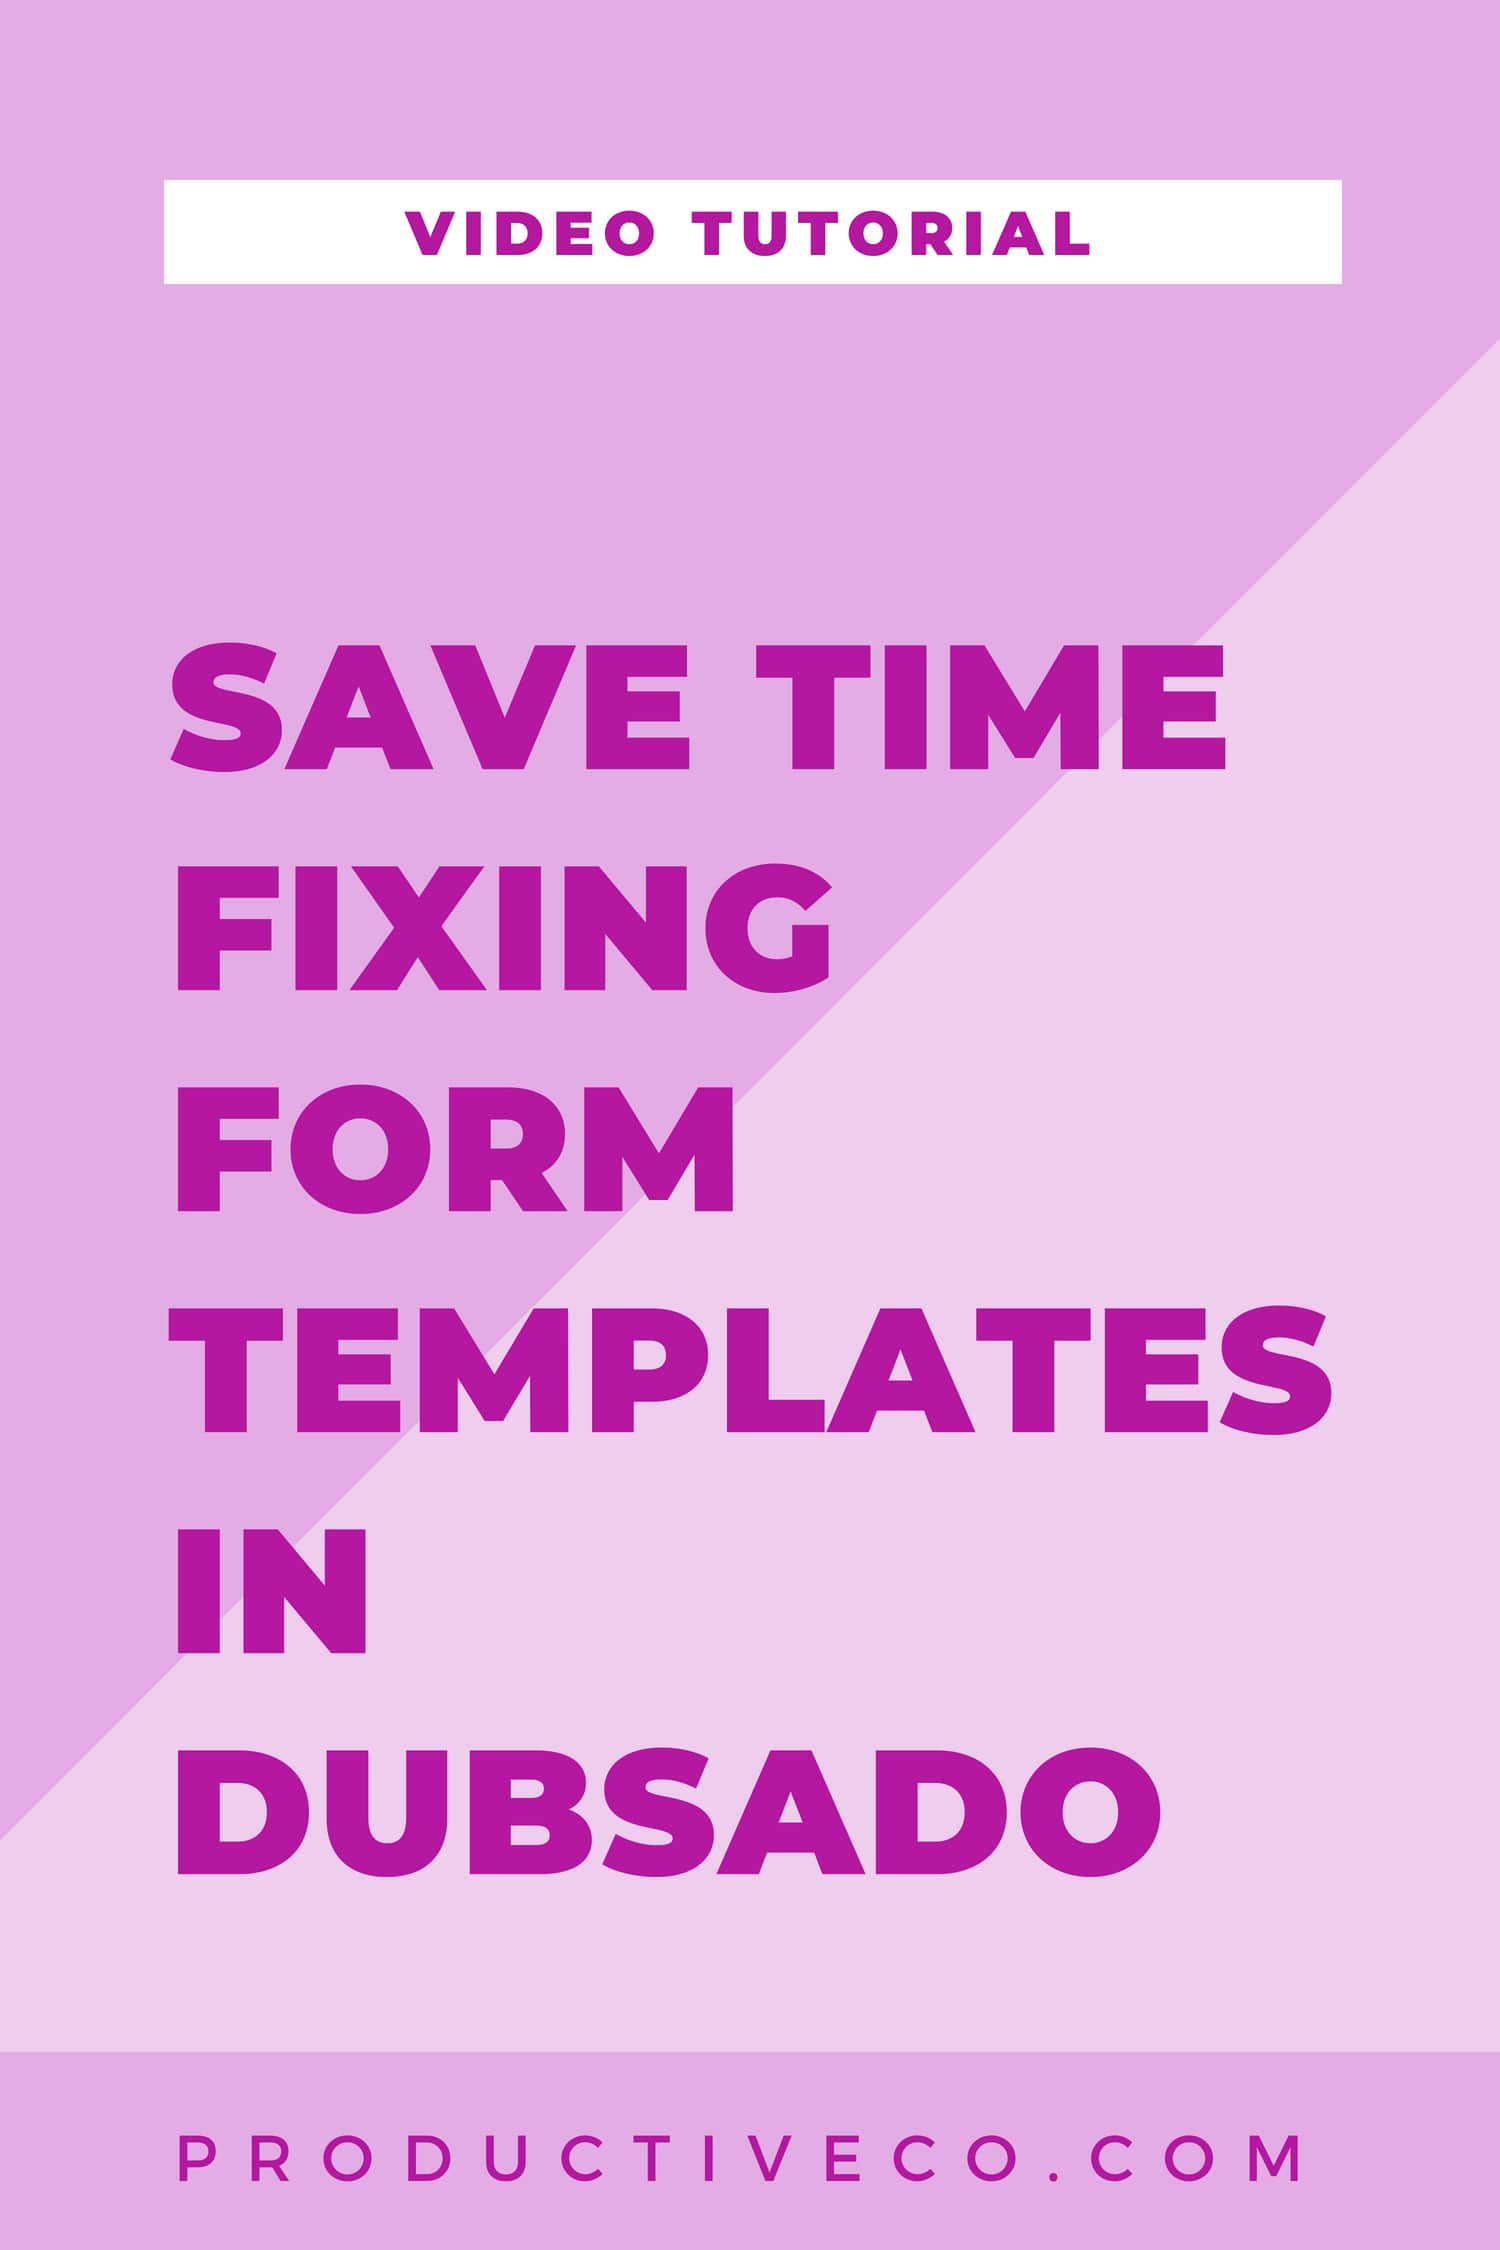 Dubsado forms templates have built in features to help save you time. Find out what they are.